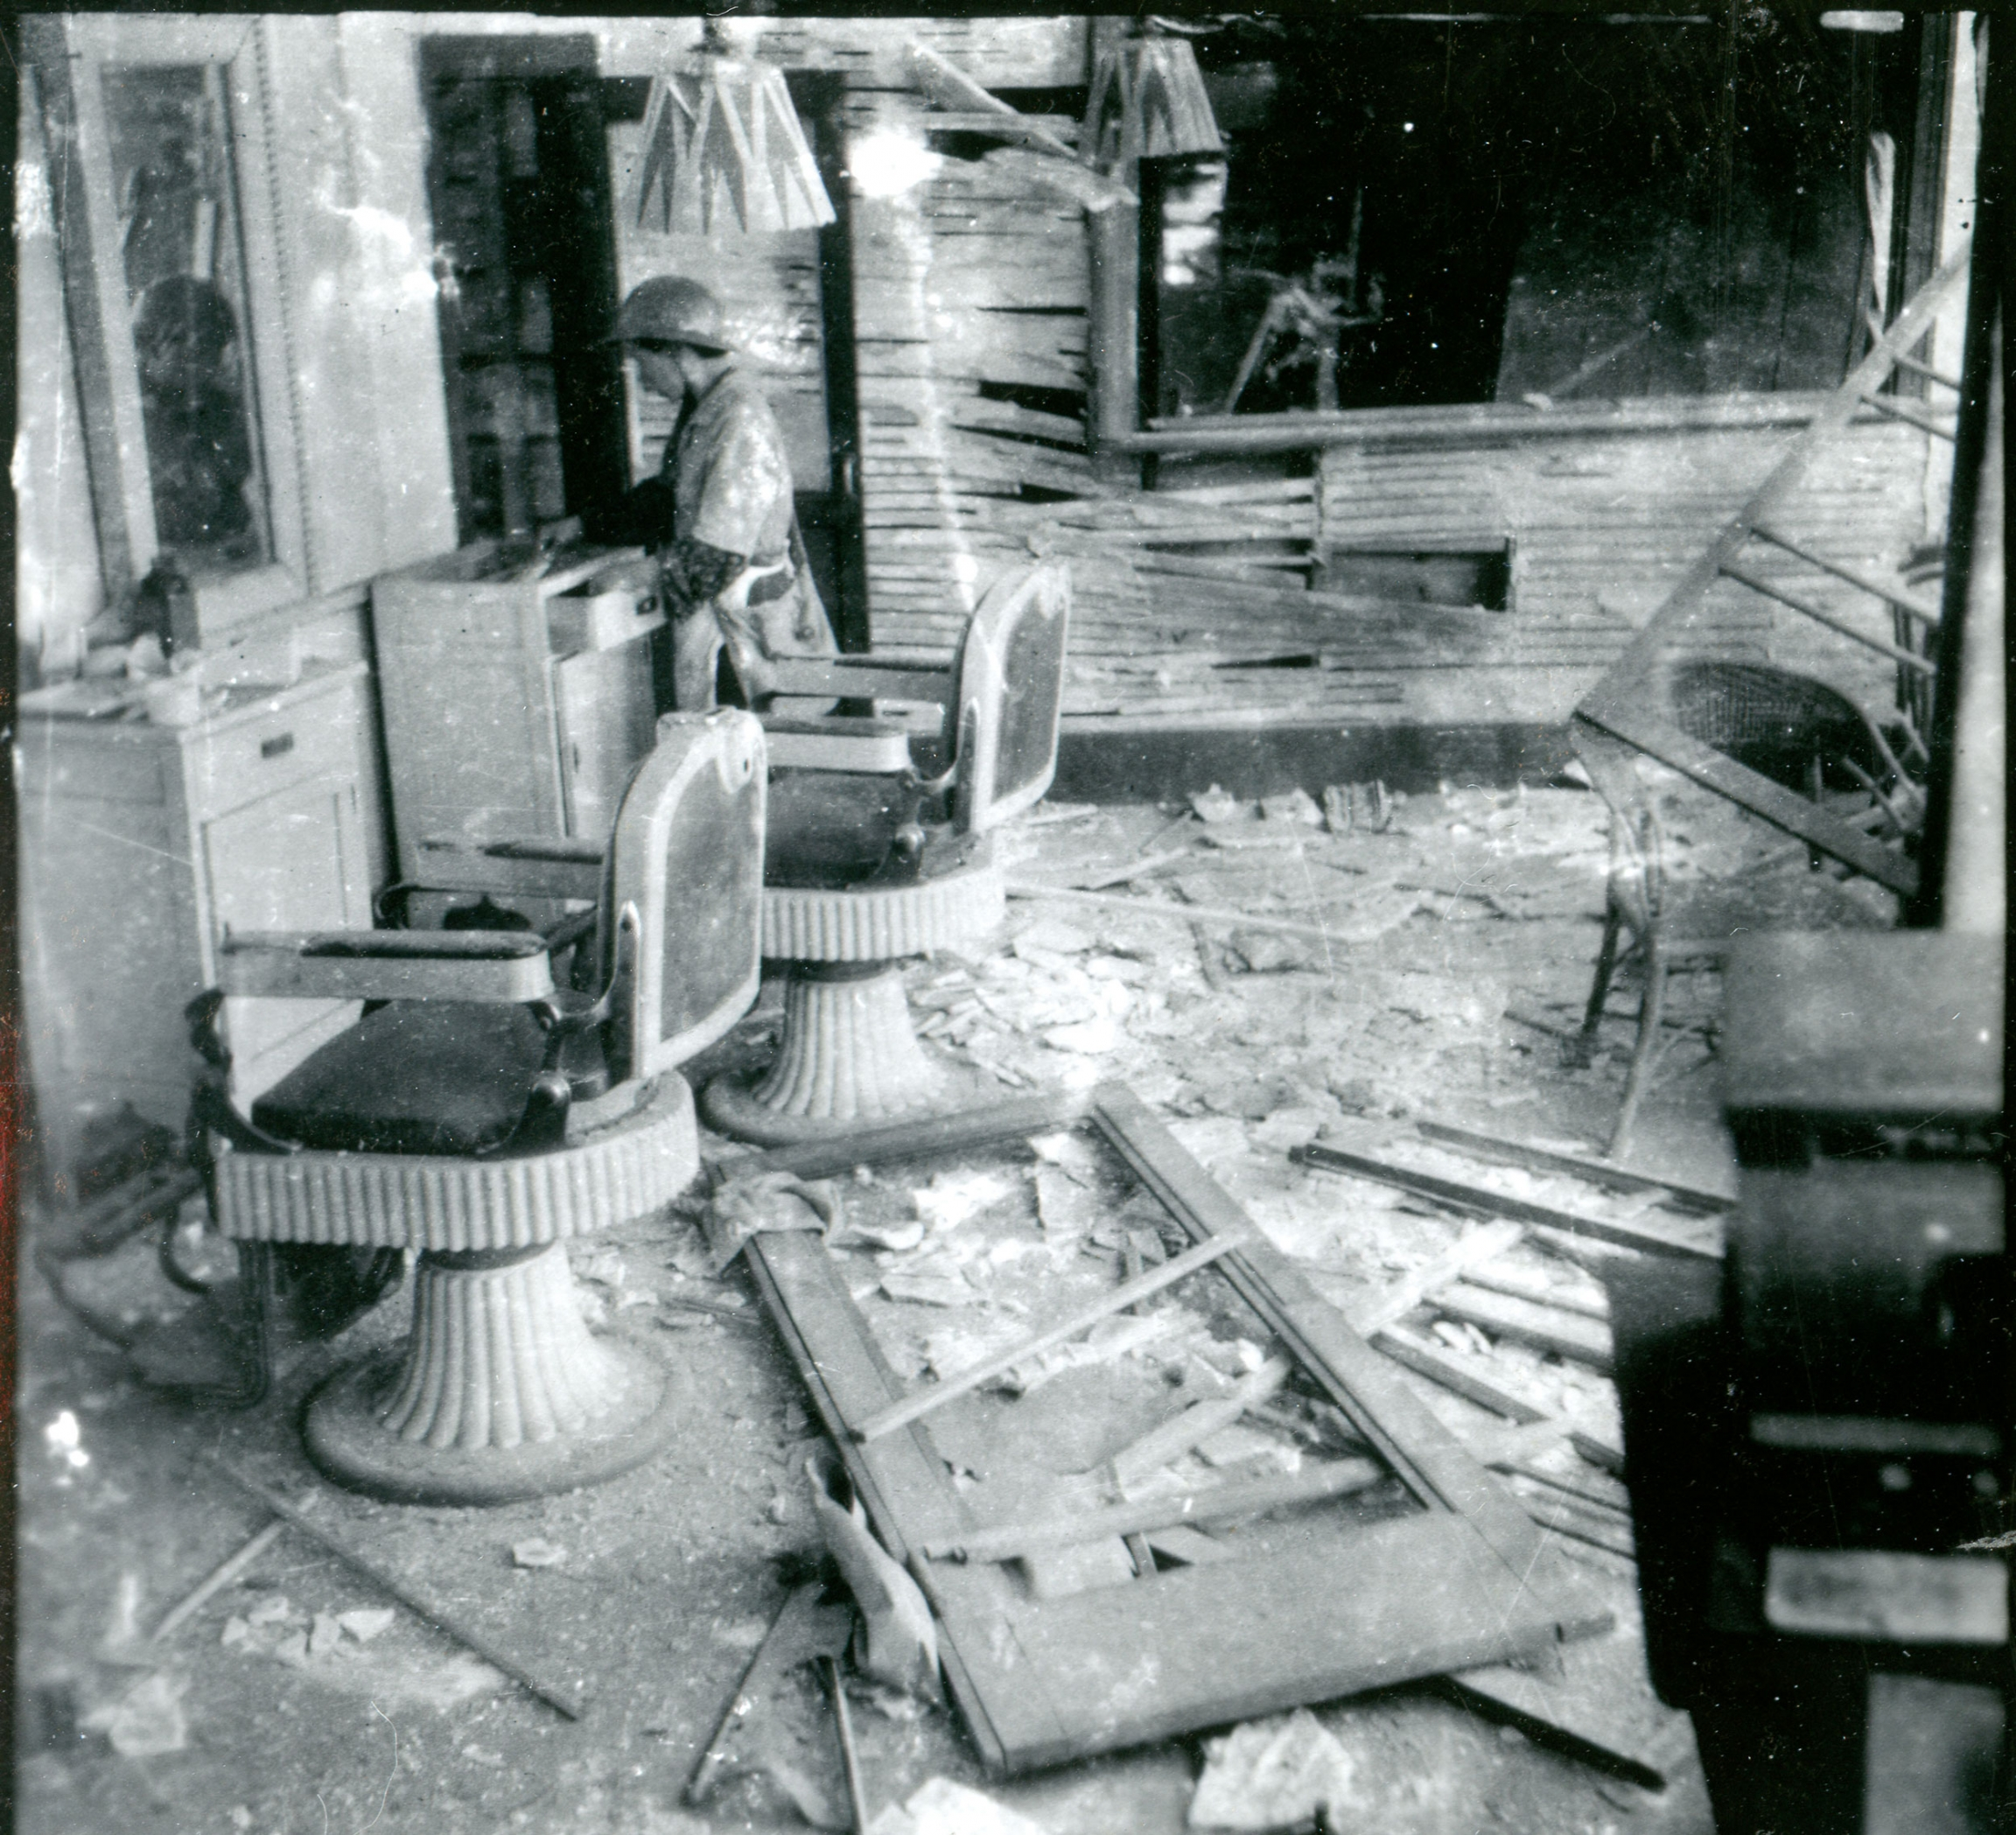 Two barbershop chairs are shown with broken glass on the floor and a woman looking through a drawer.